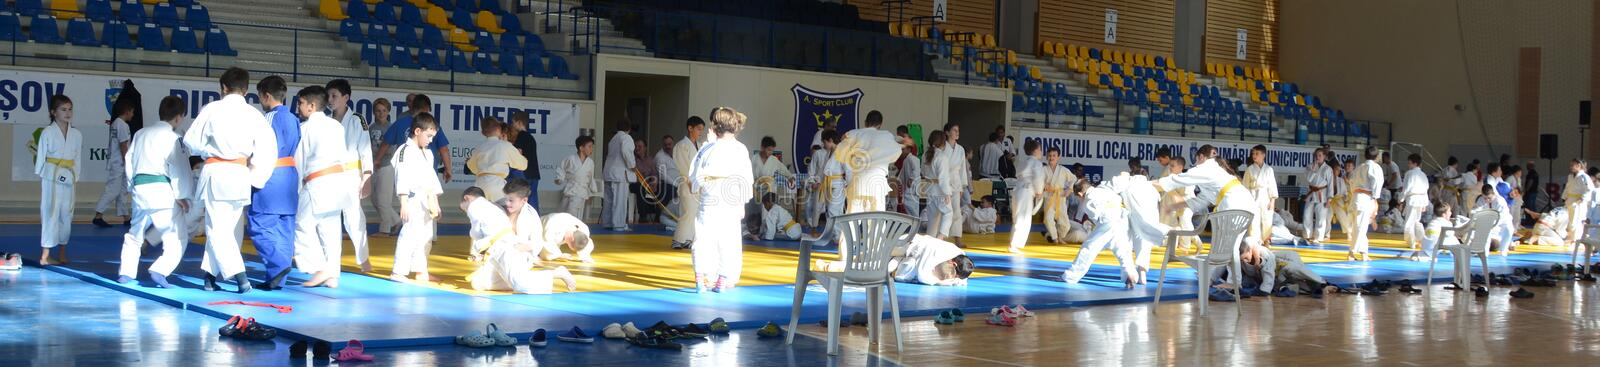 Kids Judo Cup 2016. The National contest Kids Judo Cup 2016 in Brasov royalty free stock photos